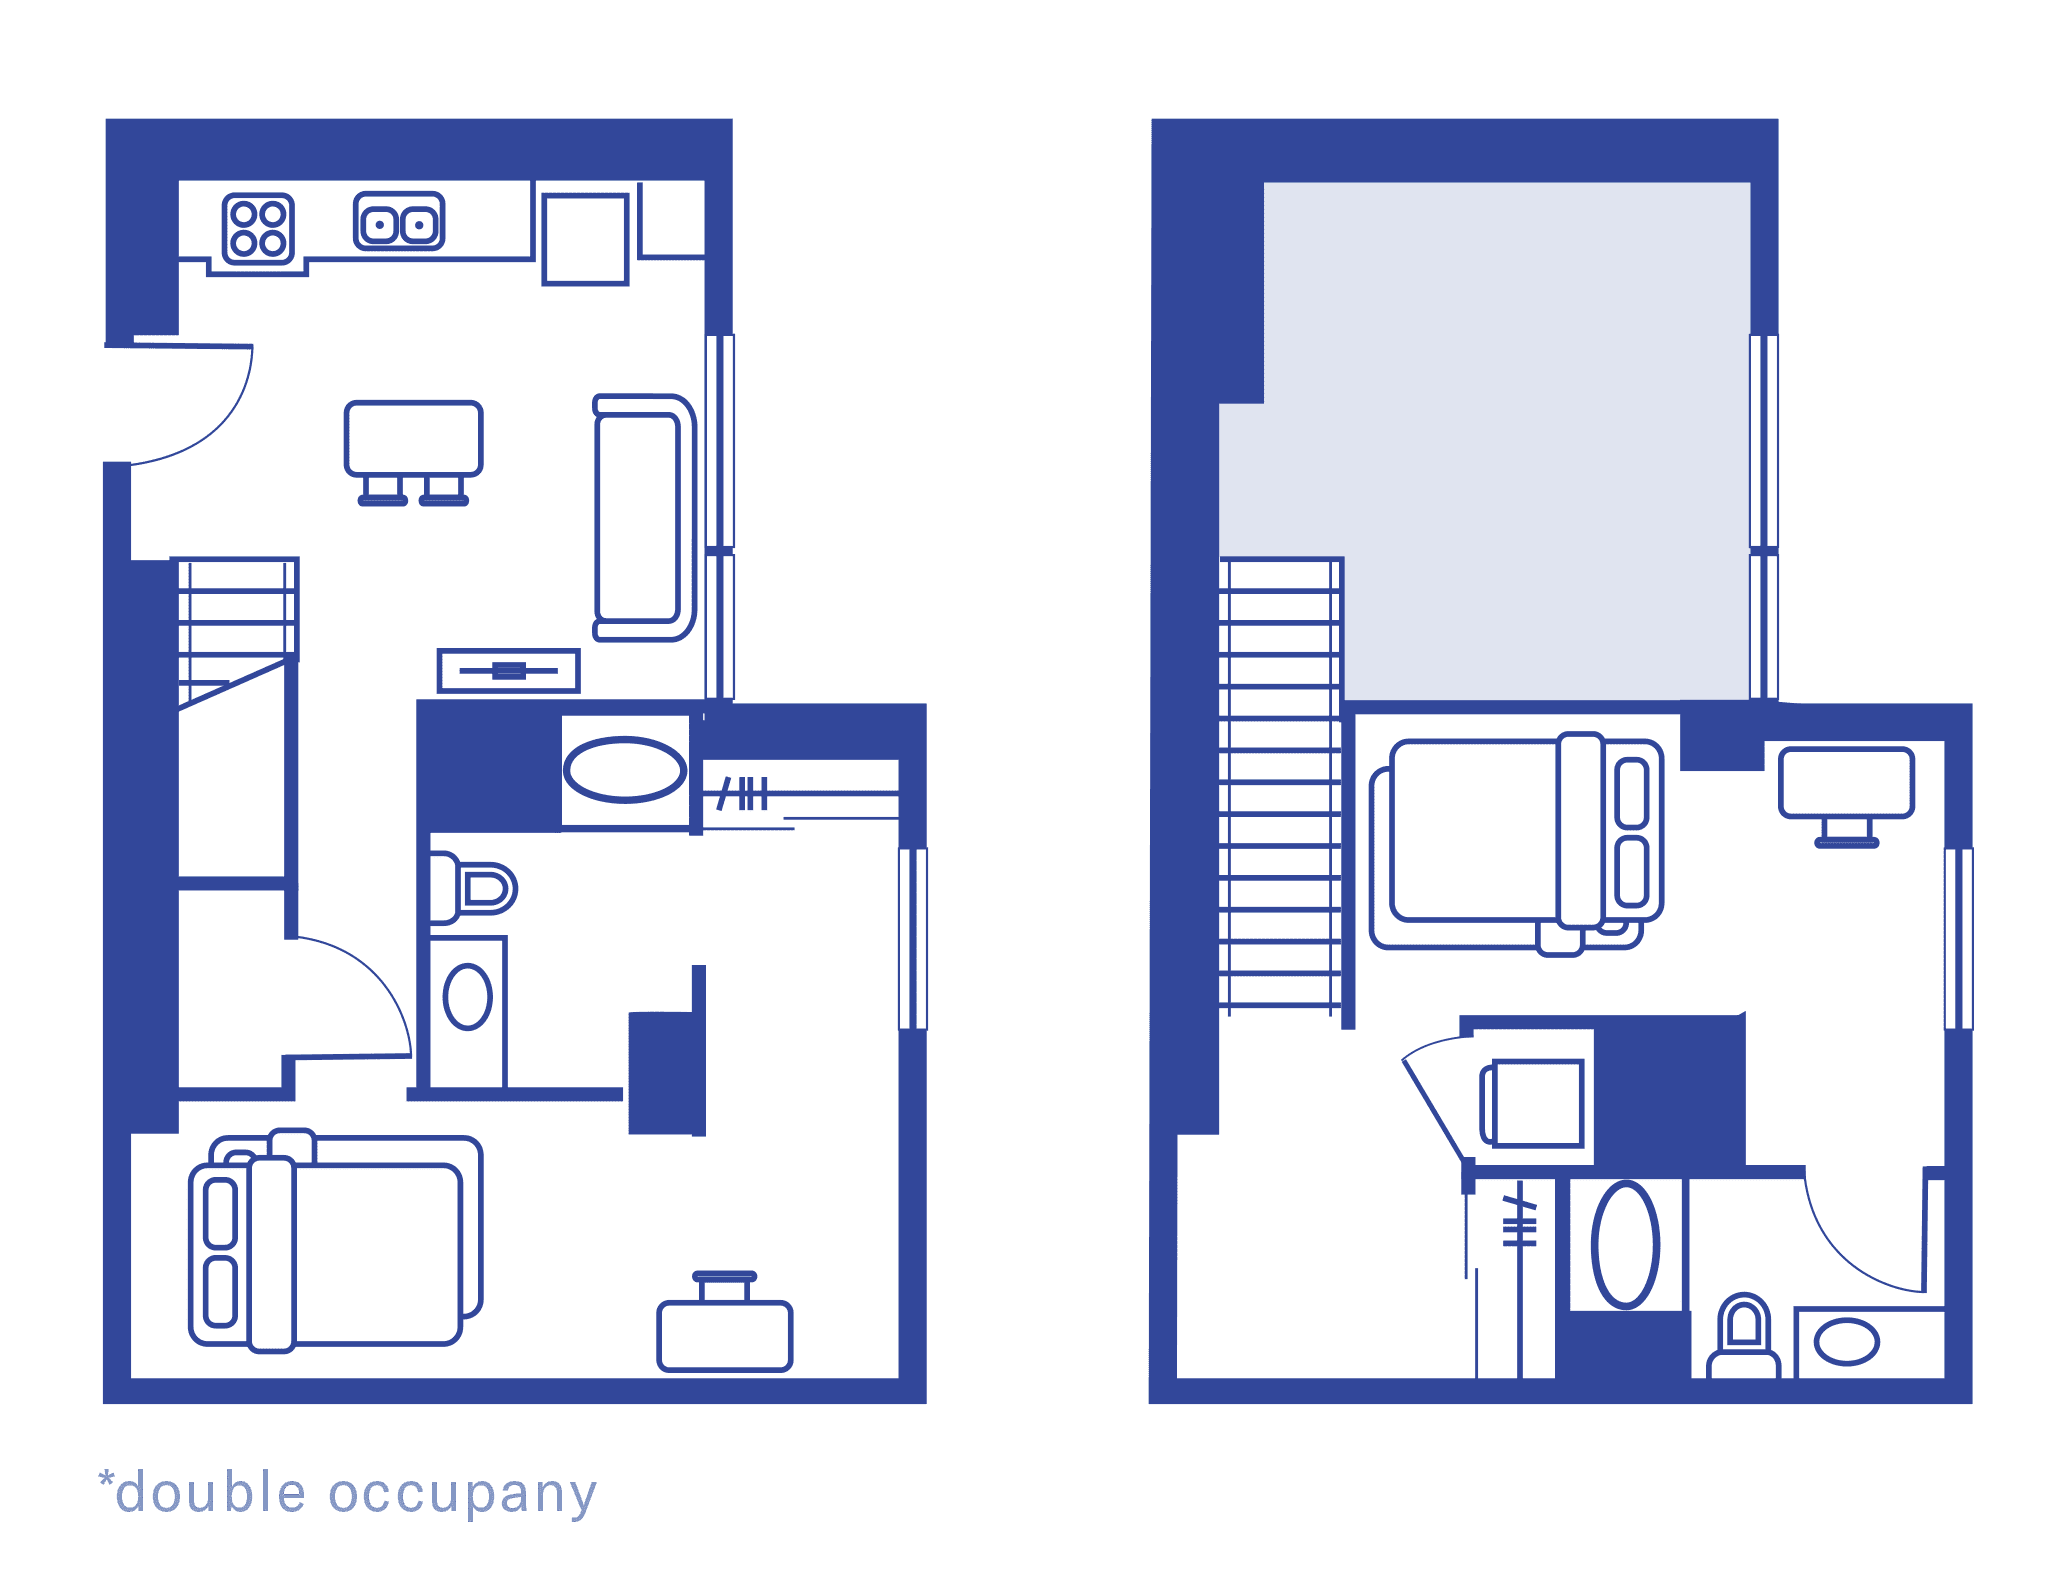 2 Bedroom 2 Bath Loft – Lark At Kohl